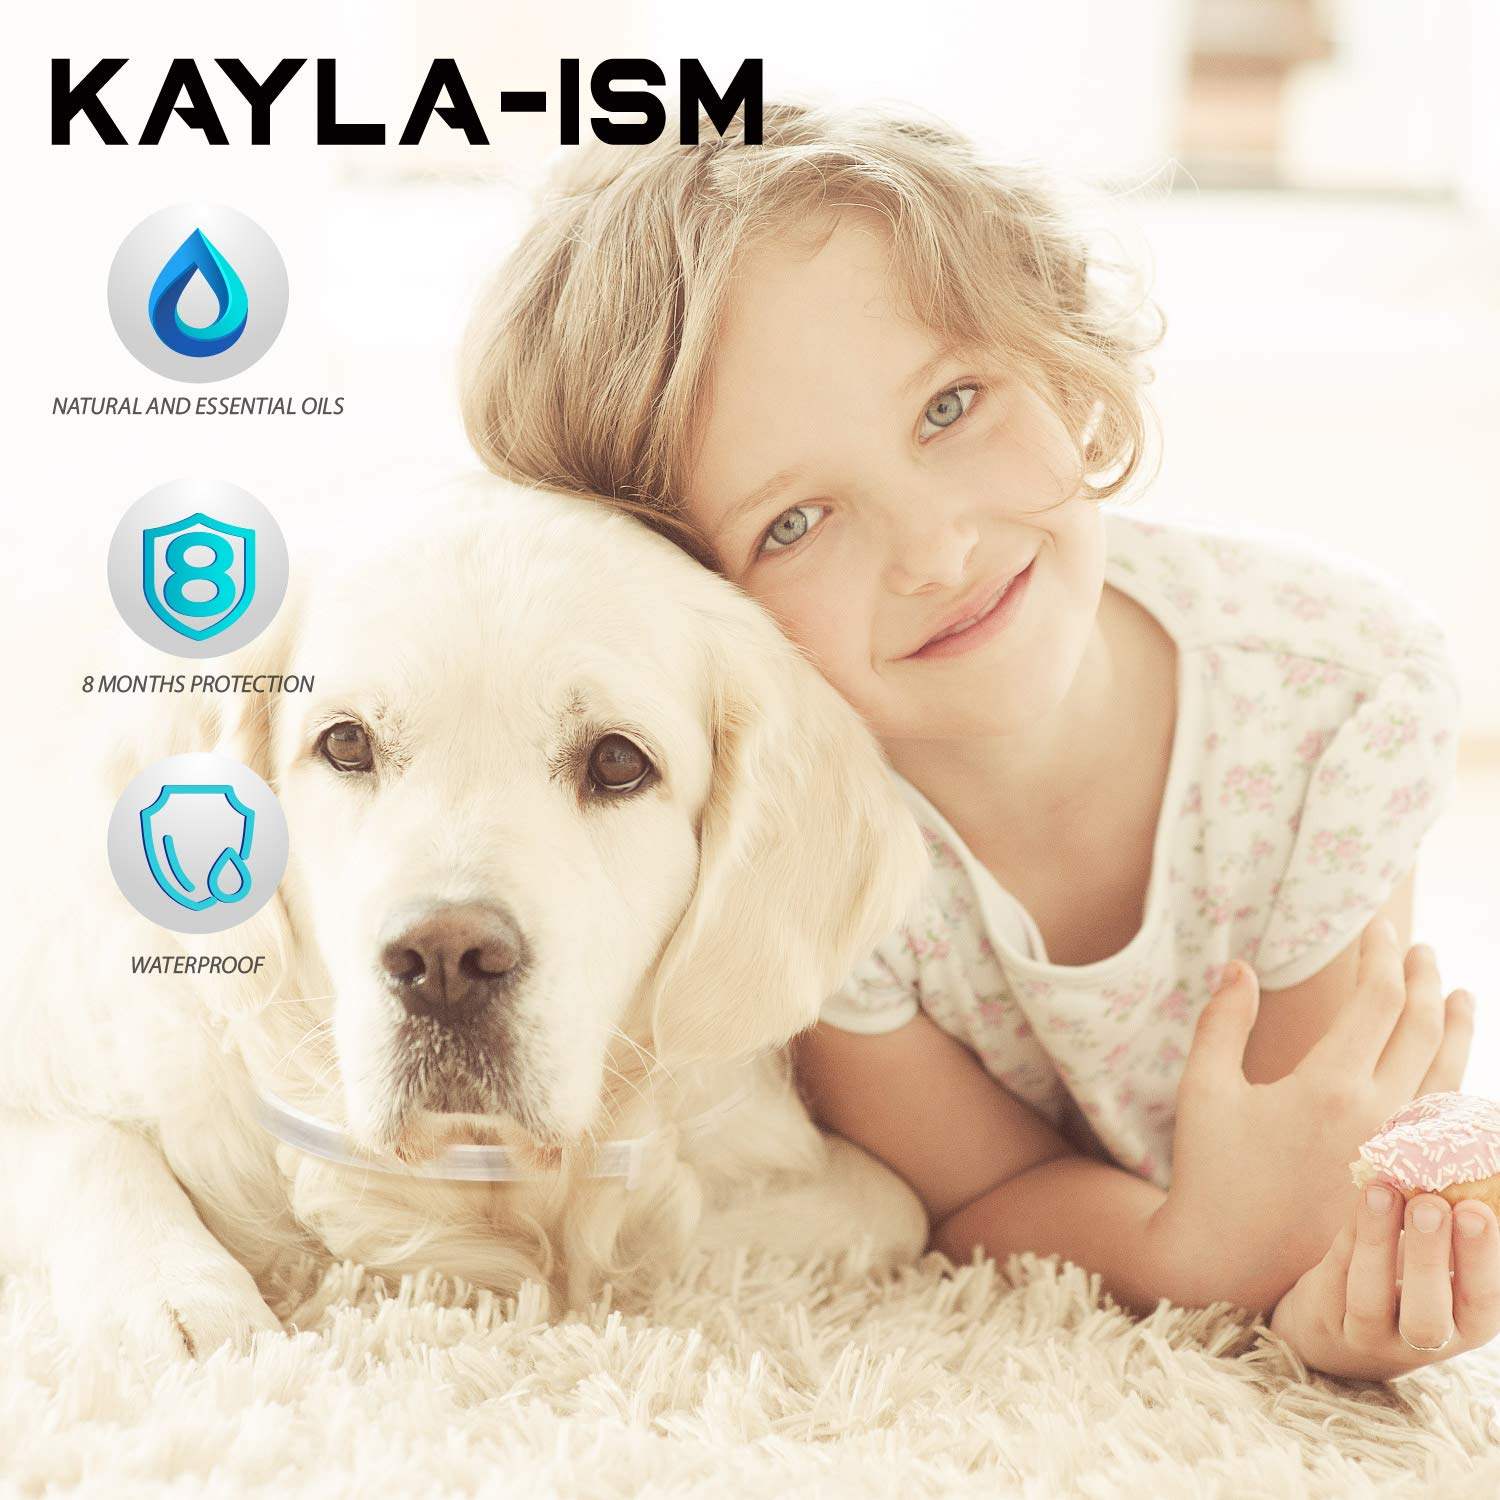 Kayla-ism Dog Flea and Tick Collar, Natural and Essential Oils, Waterproof, One Size Fits All, 8 Months Full Protection, Healthy and Harmless by Kayla-ism (Image #3)